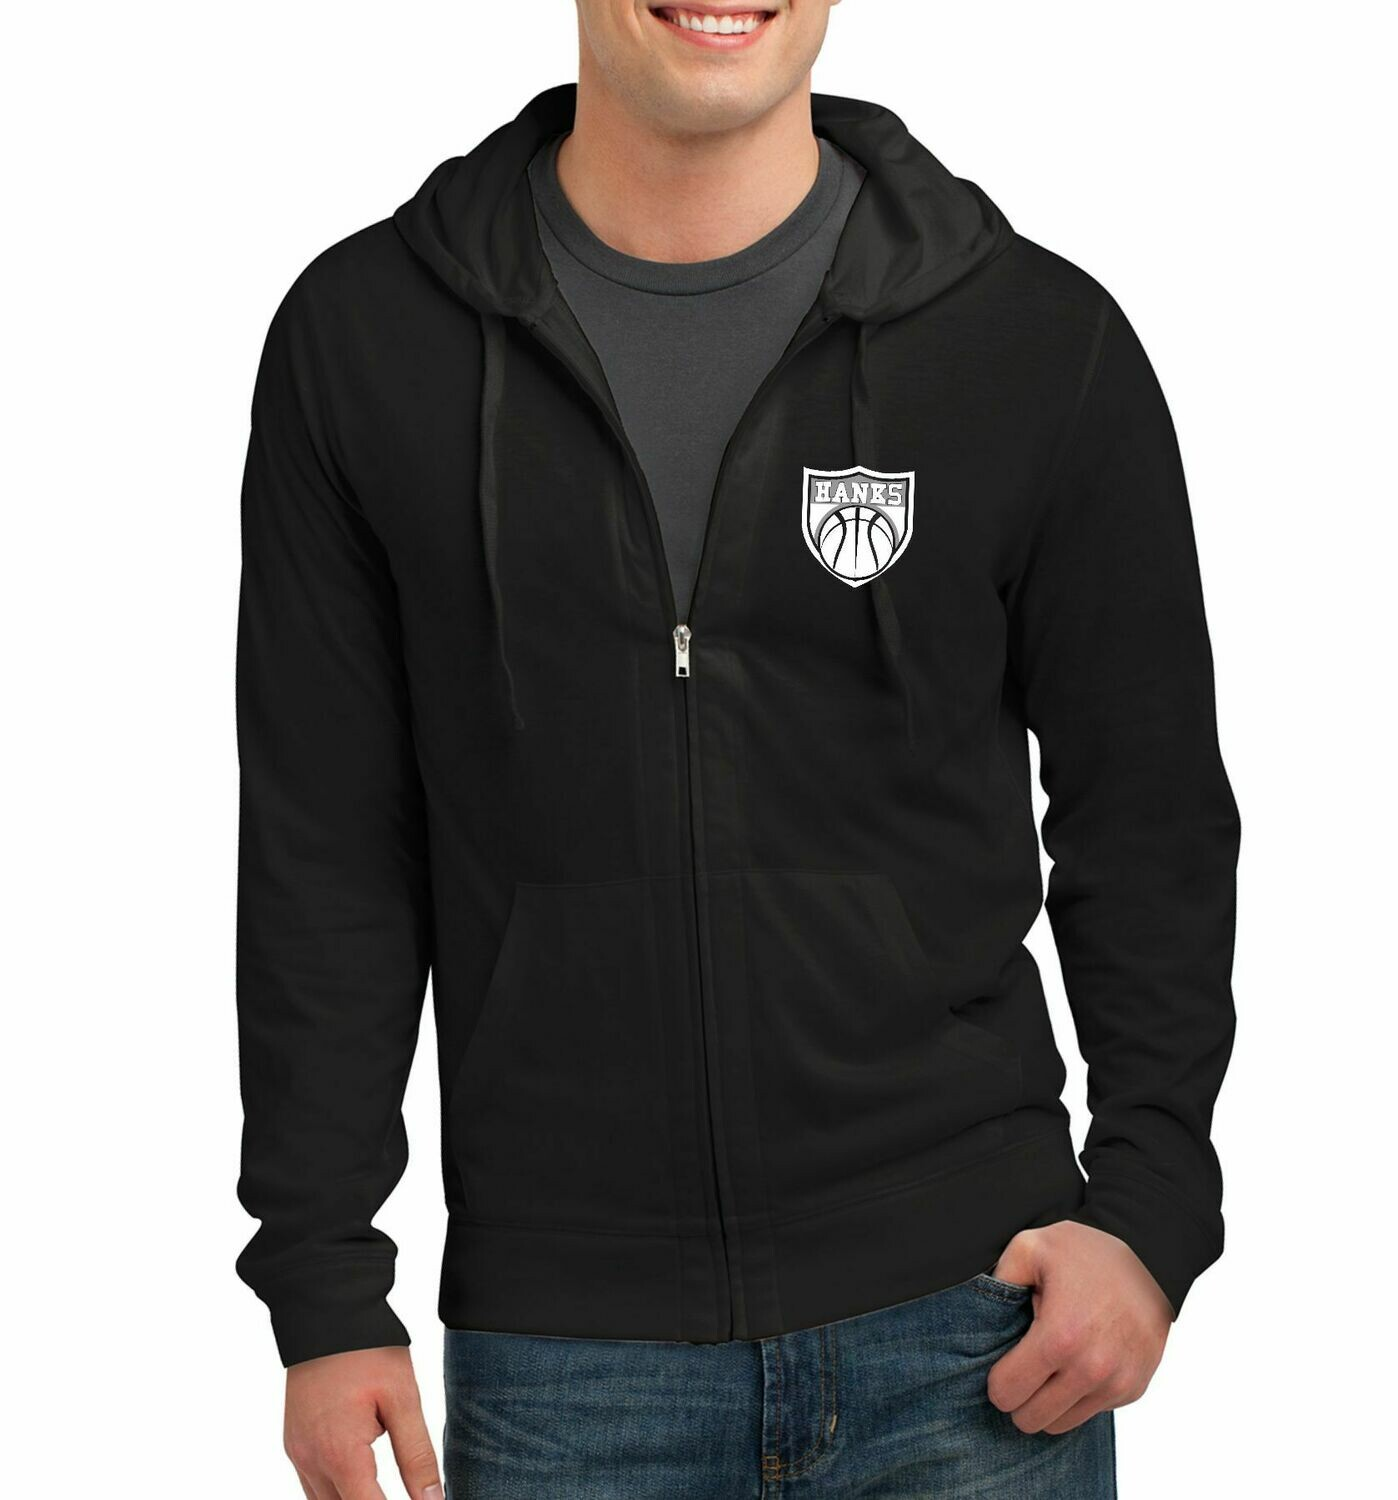 Hanks Basketball Crest Zip Up